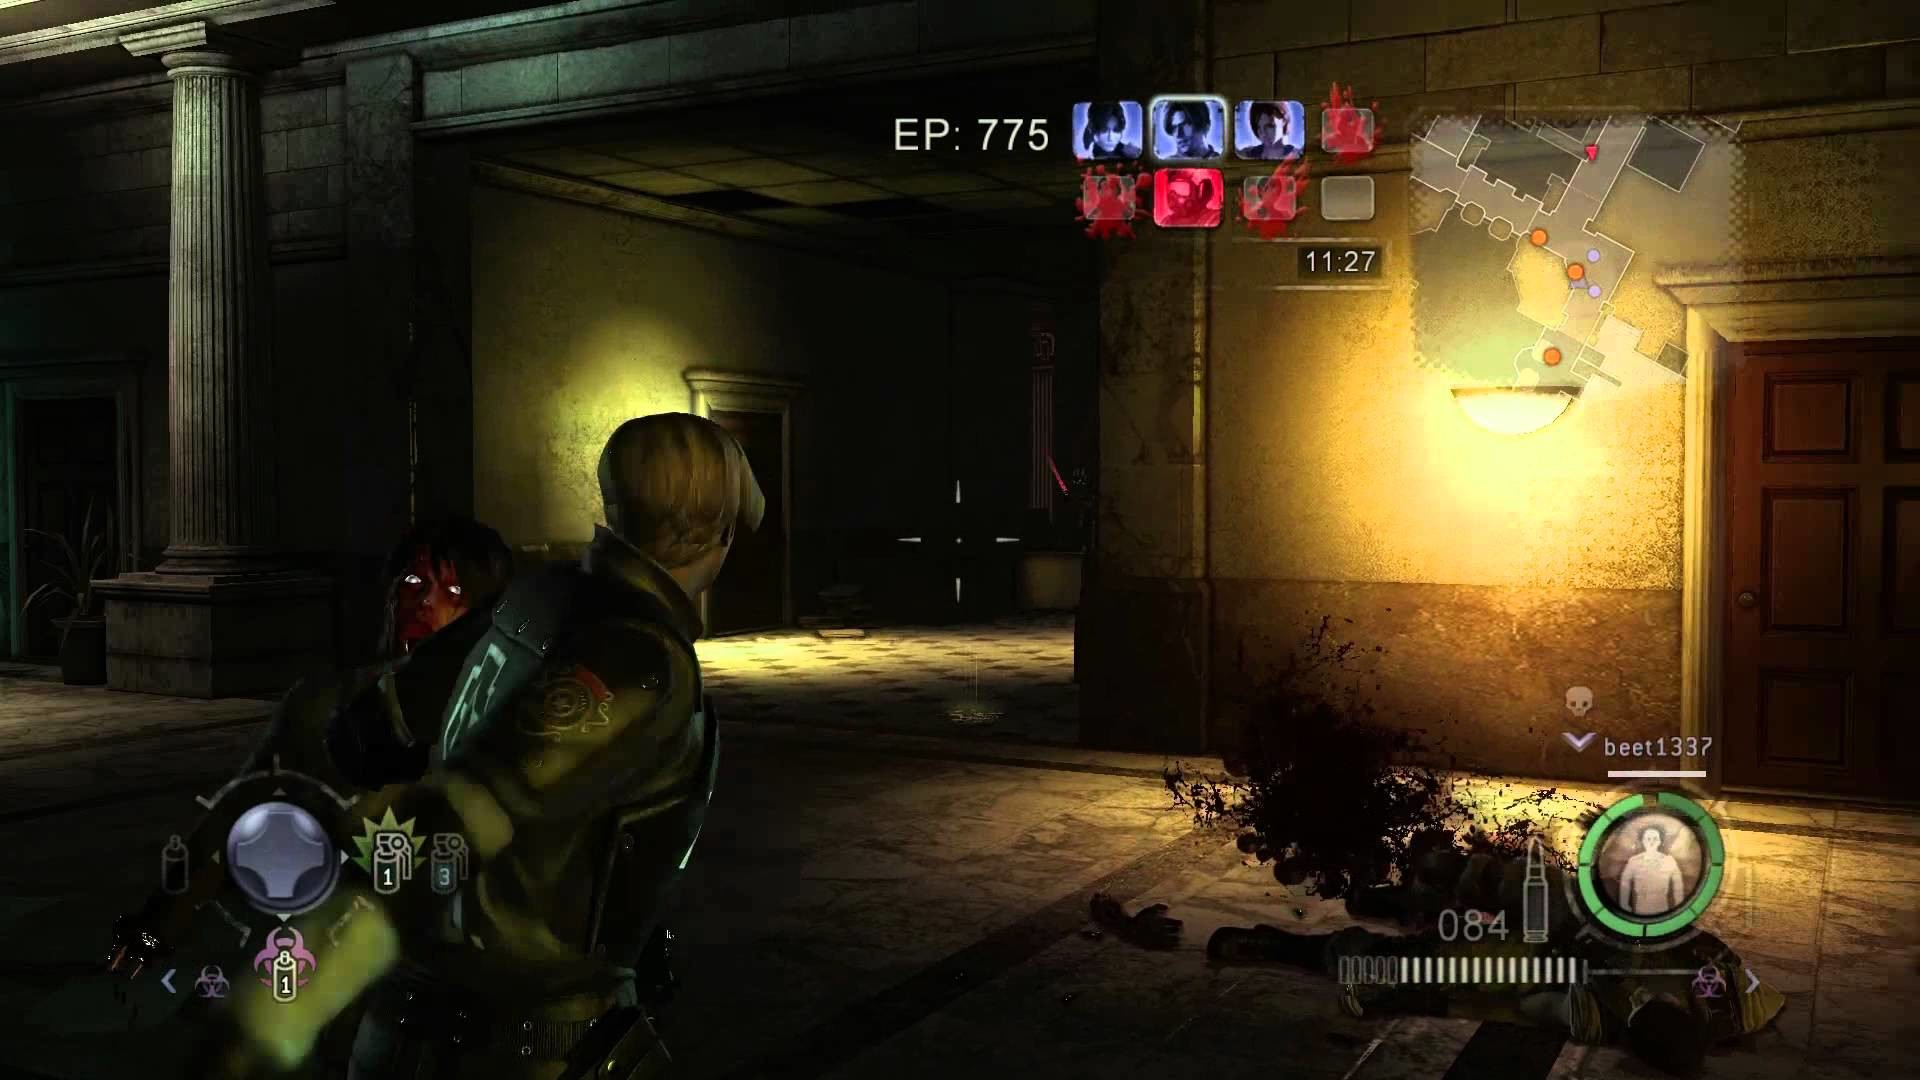 1920x1080 Resident Evil Operation Raccoon City Online versus/heroes gameplay Leon S.  Kennedy PC 1080p HD - YouTube